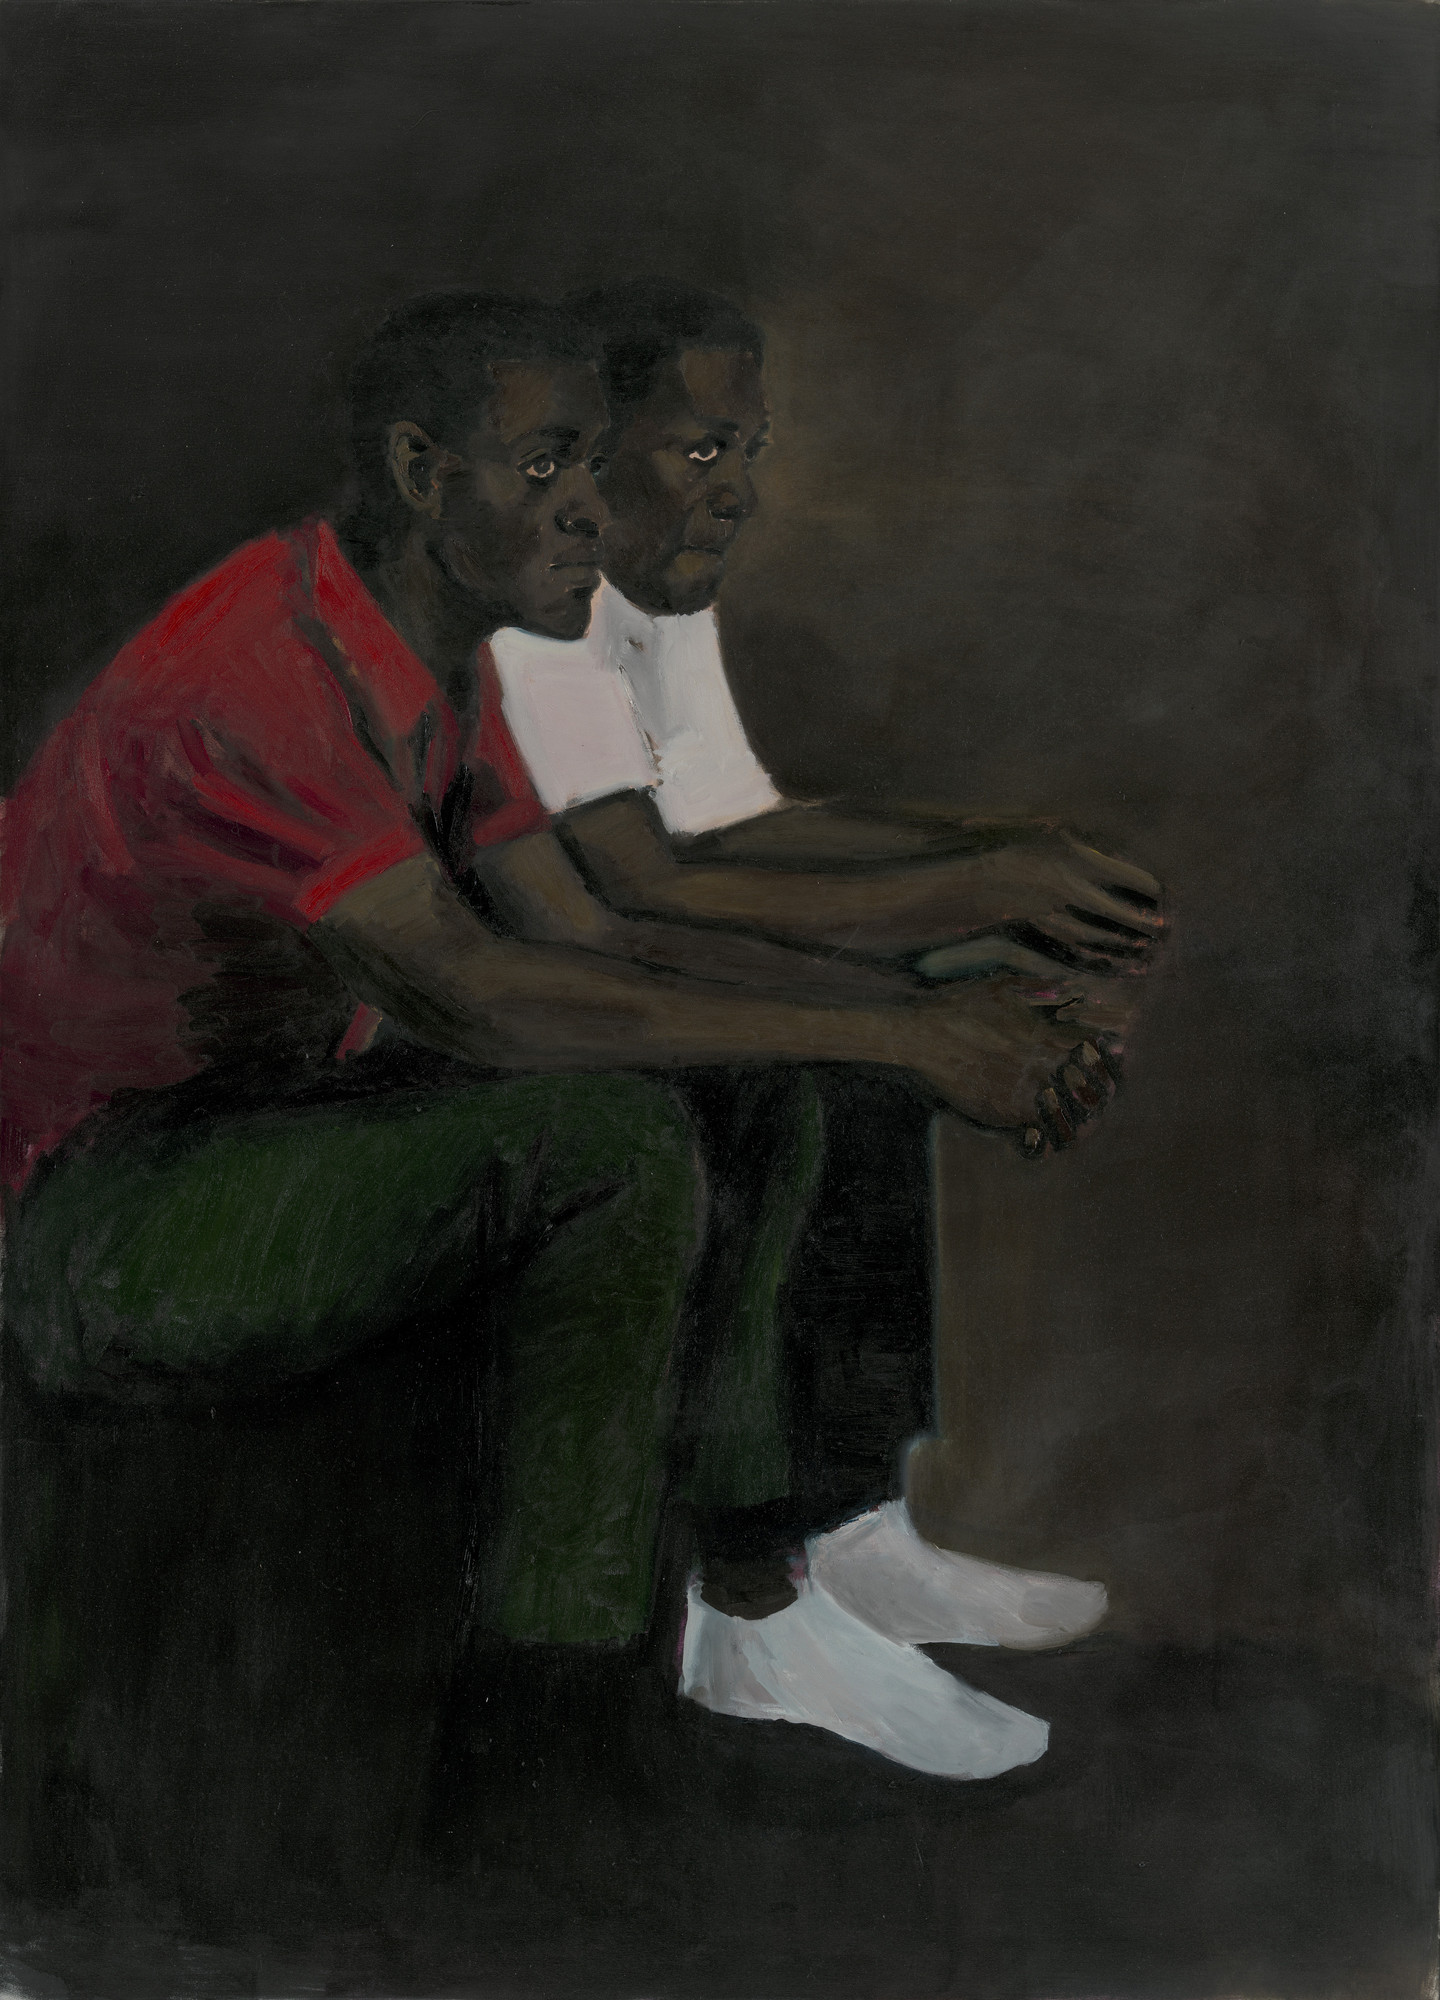 Lynette Yiadom-Boakye. The Myriad Motives of Men. 2014